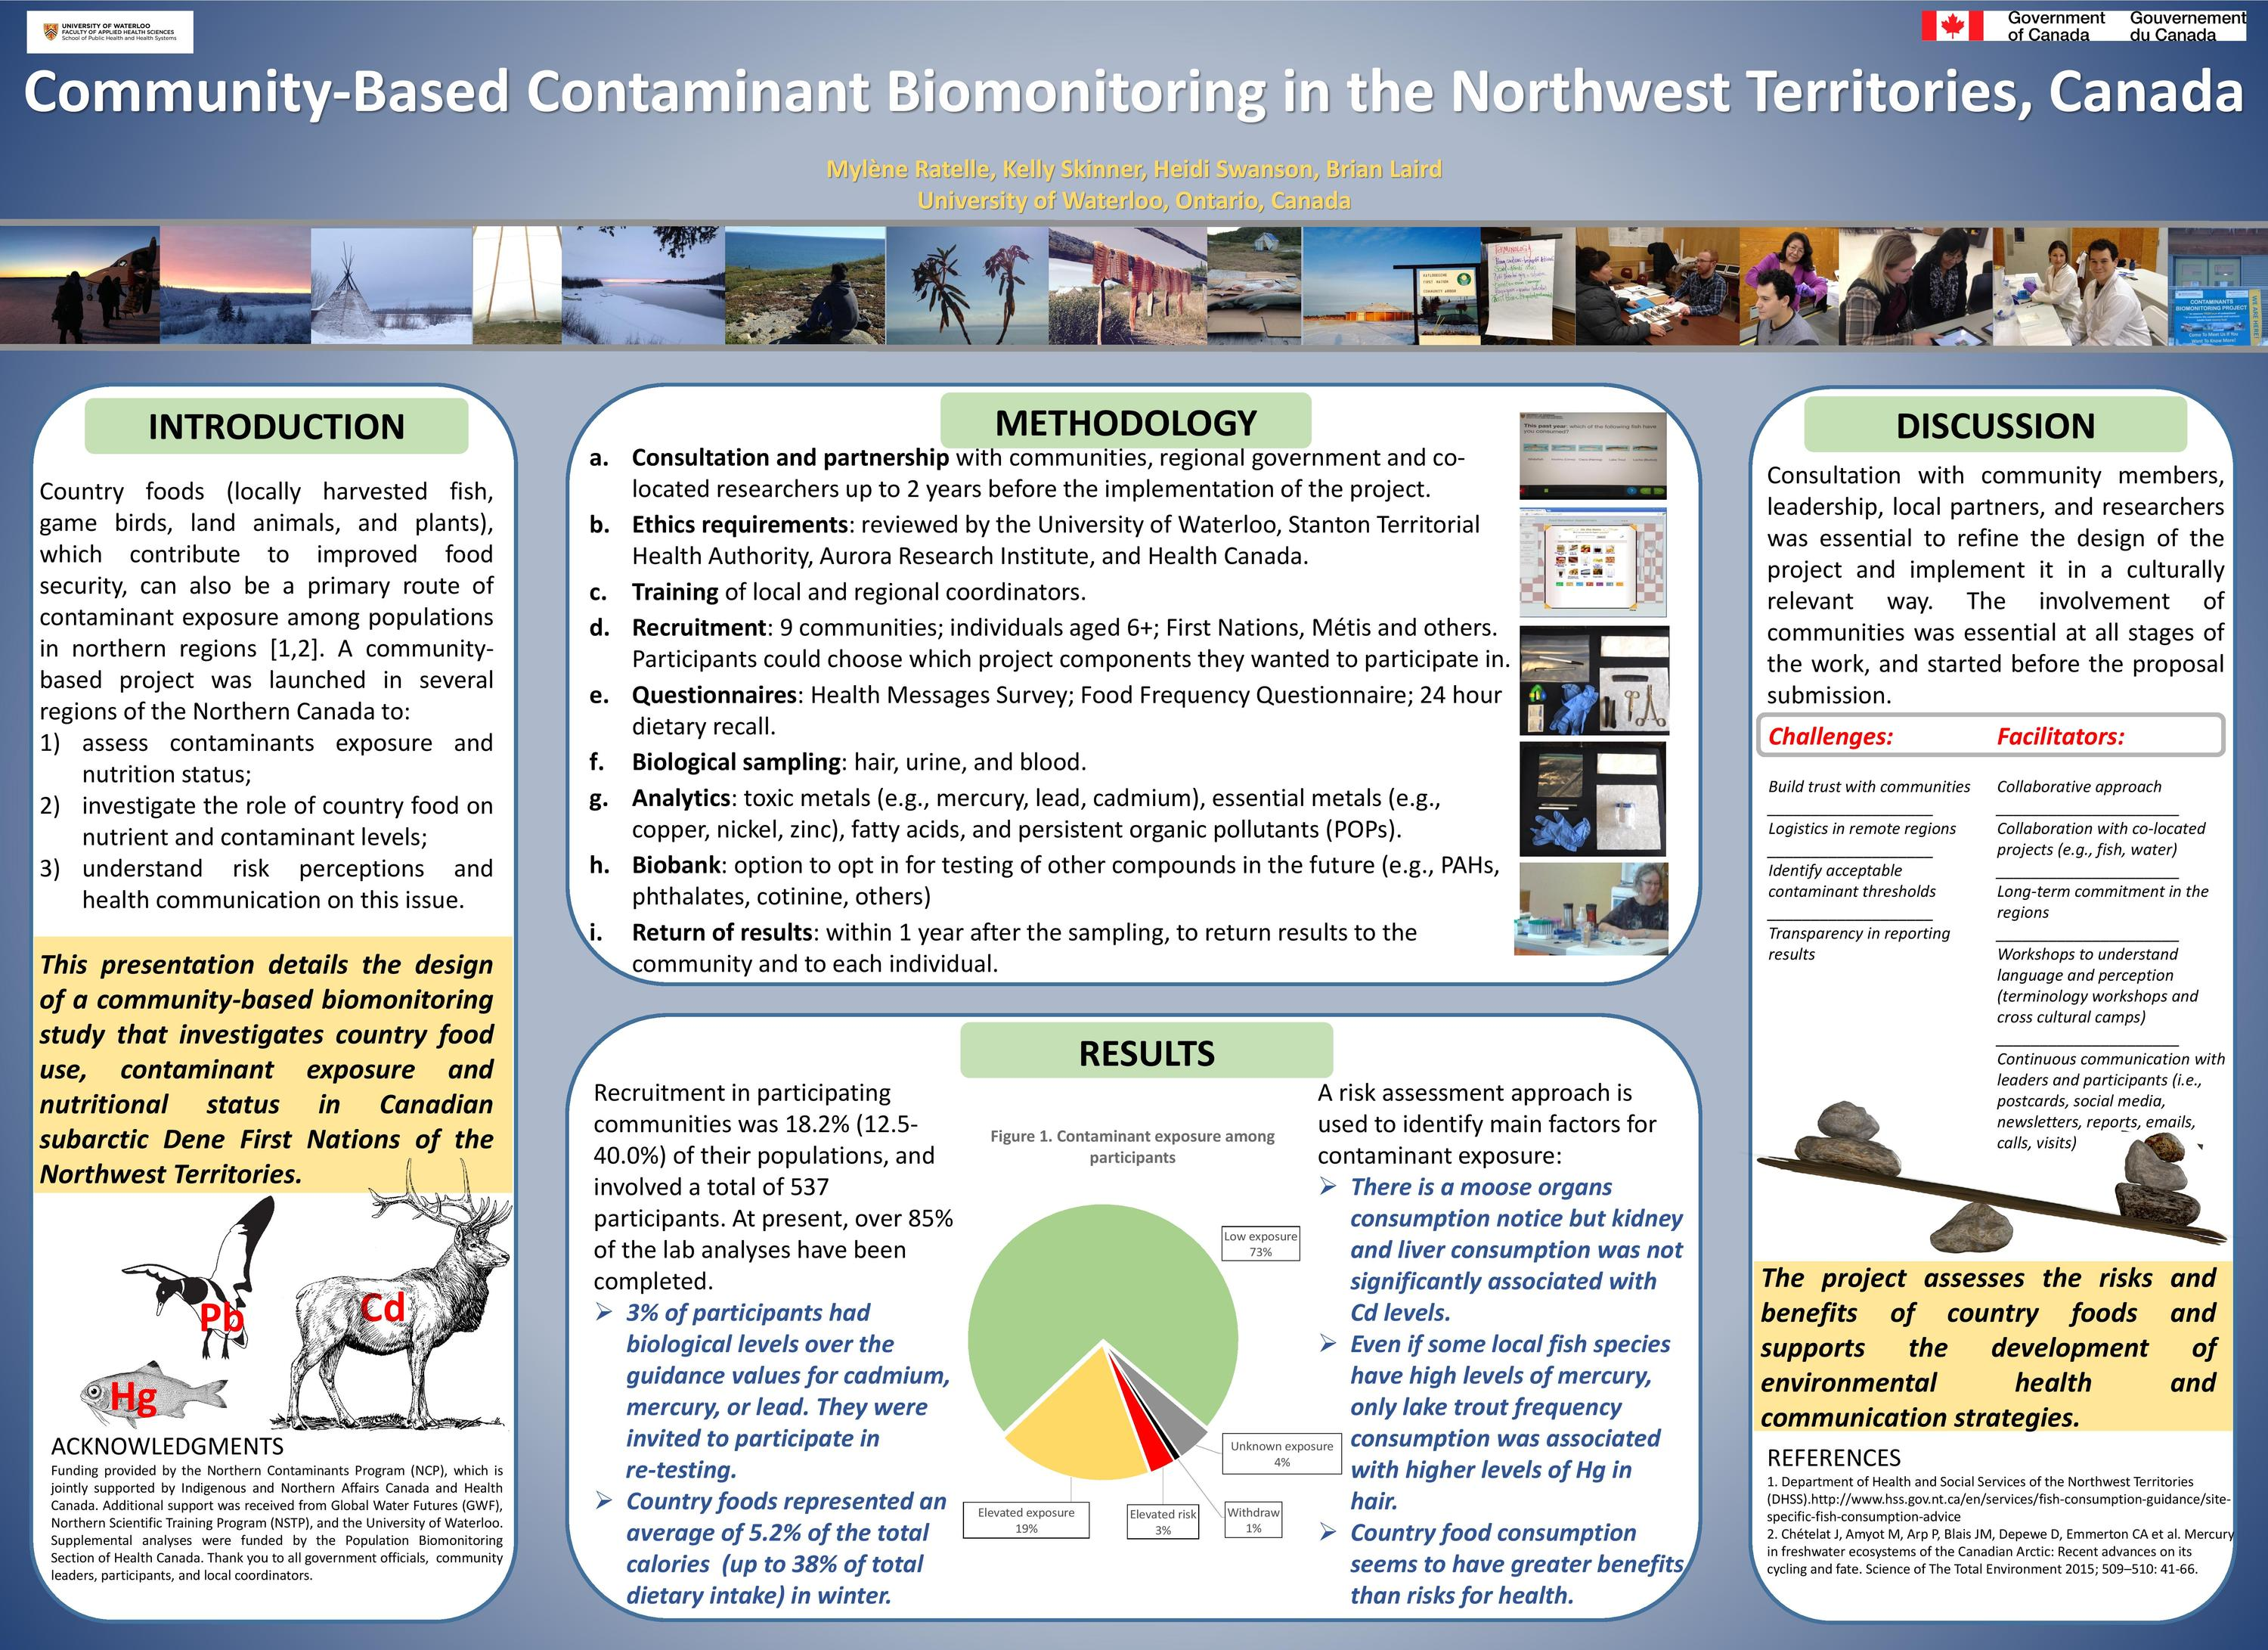 Dr. Ratelle's conference poster